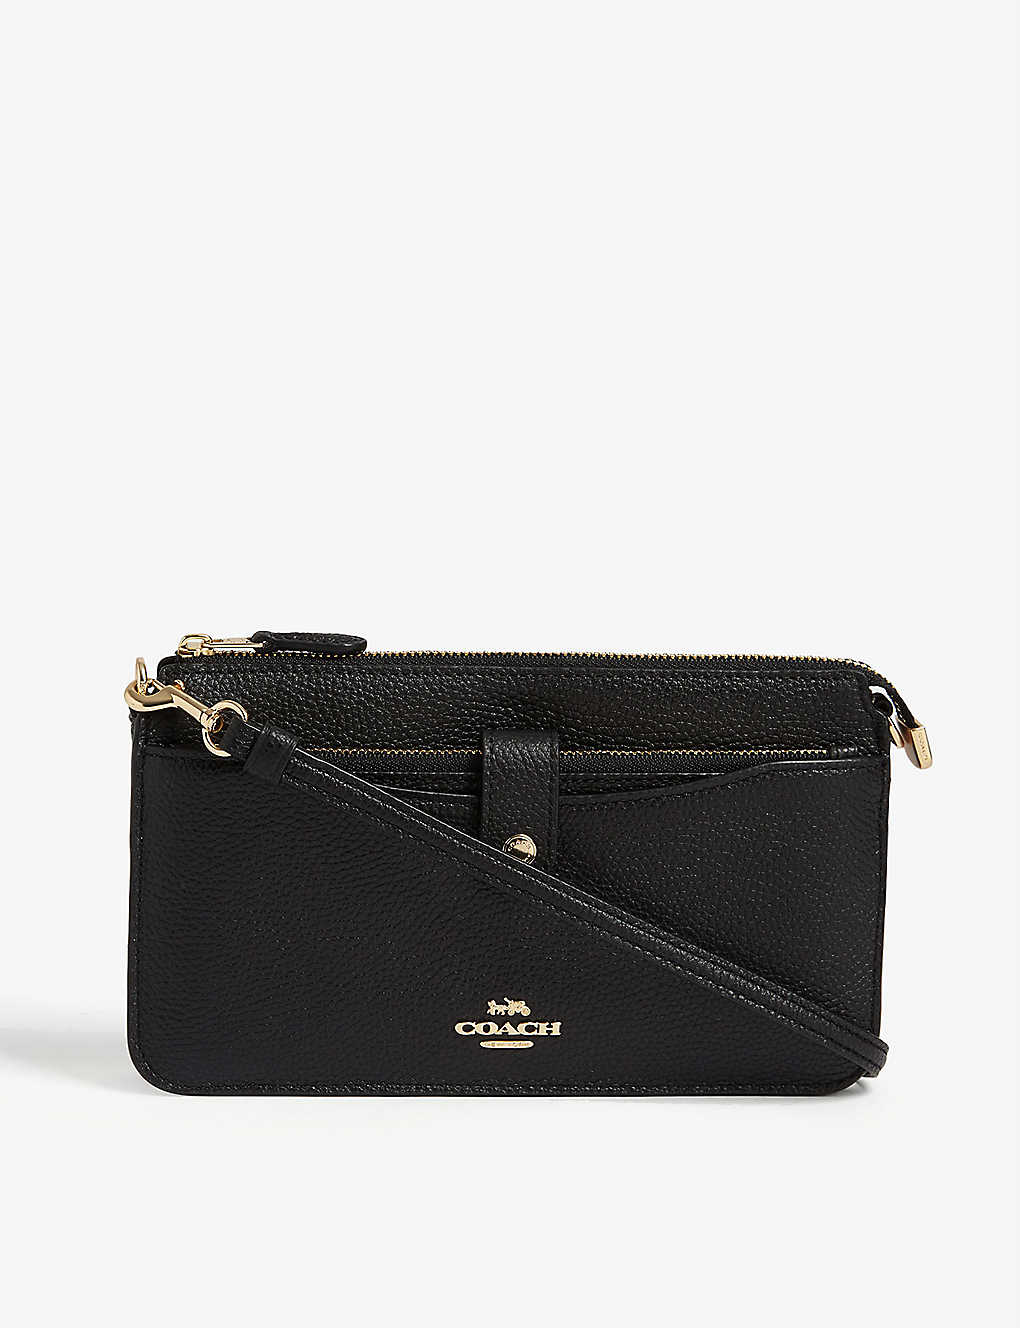 COACH: Leather cross-body bag